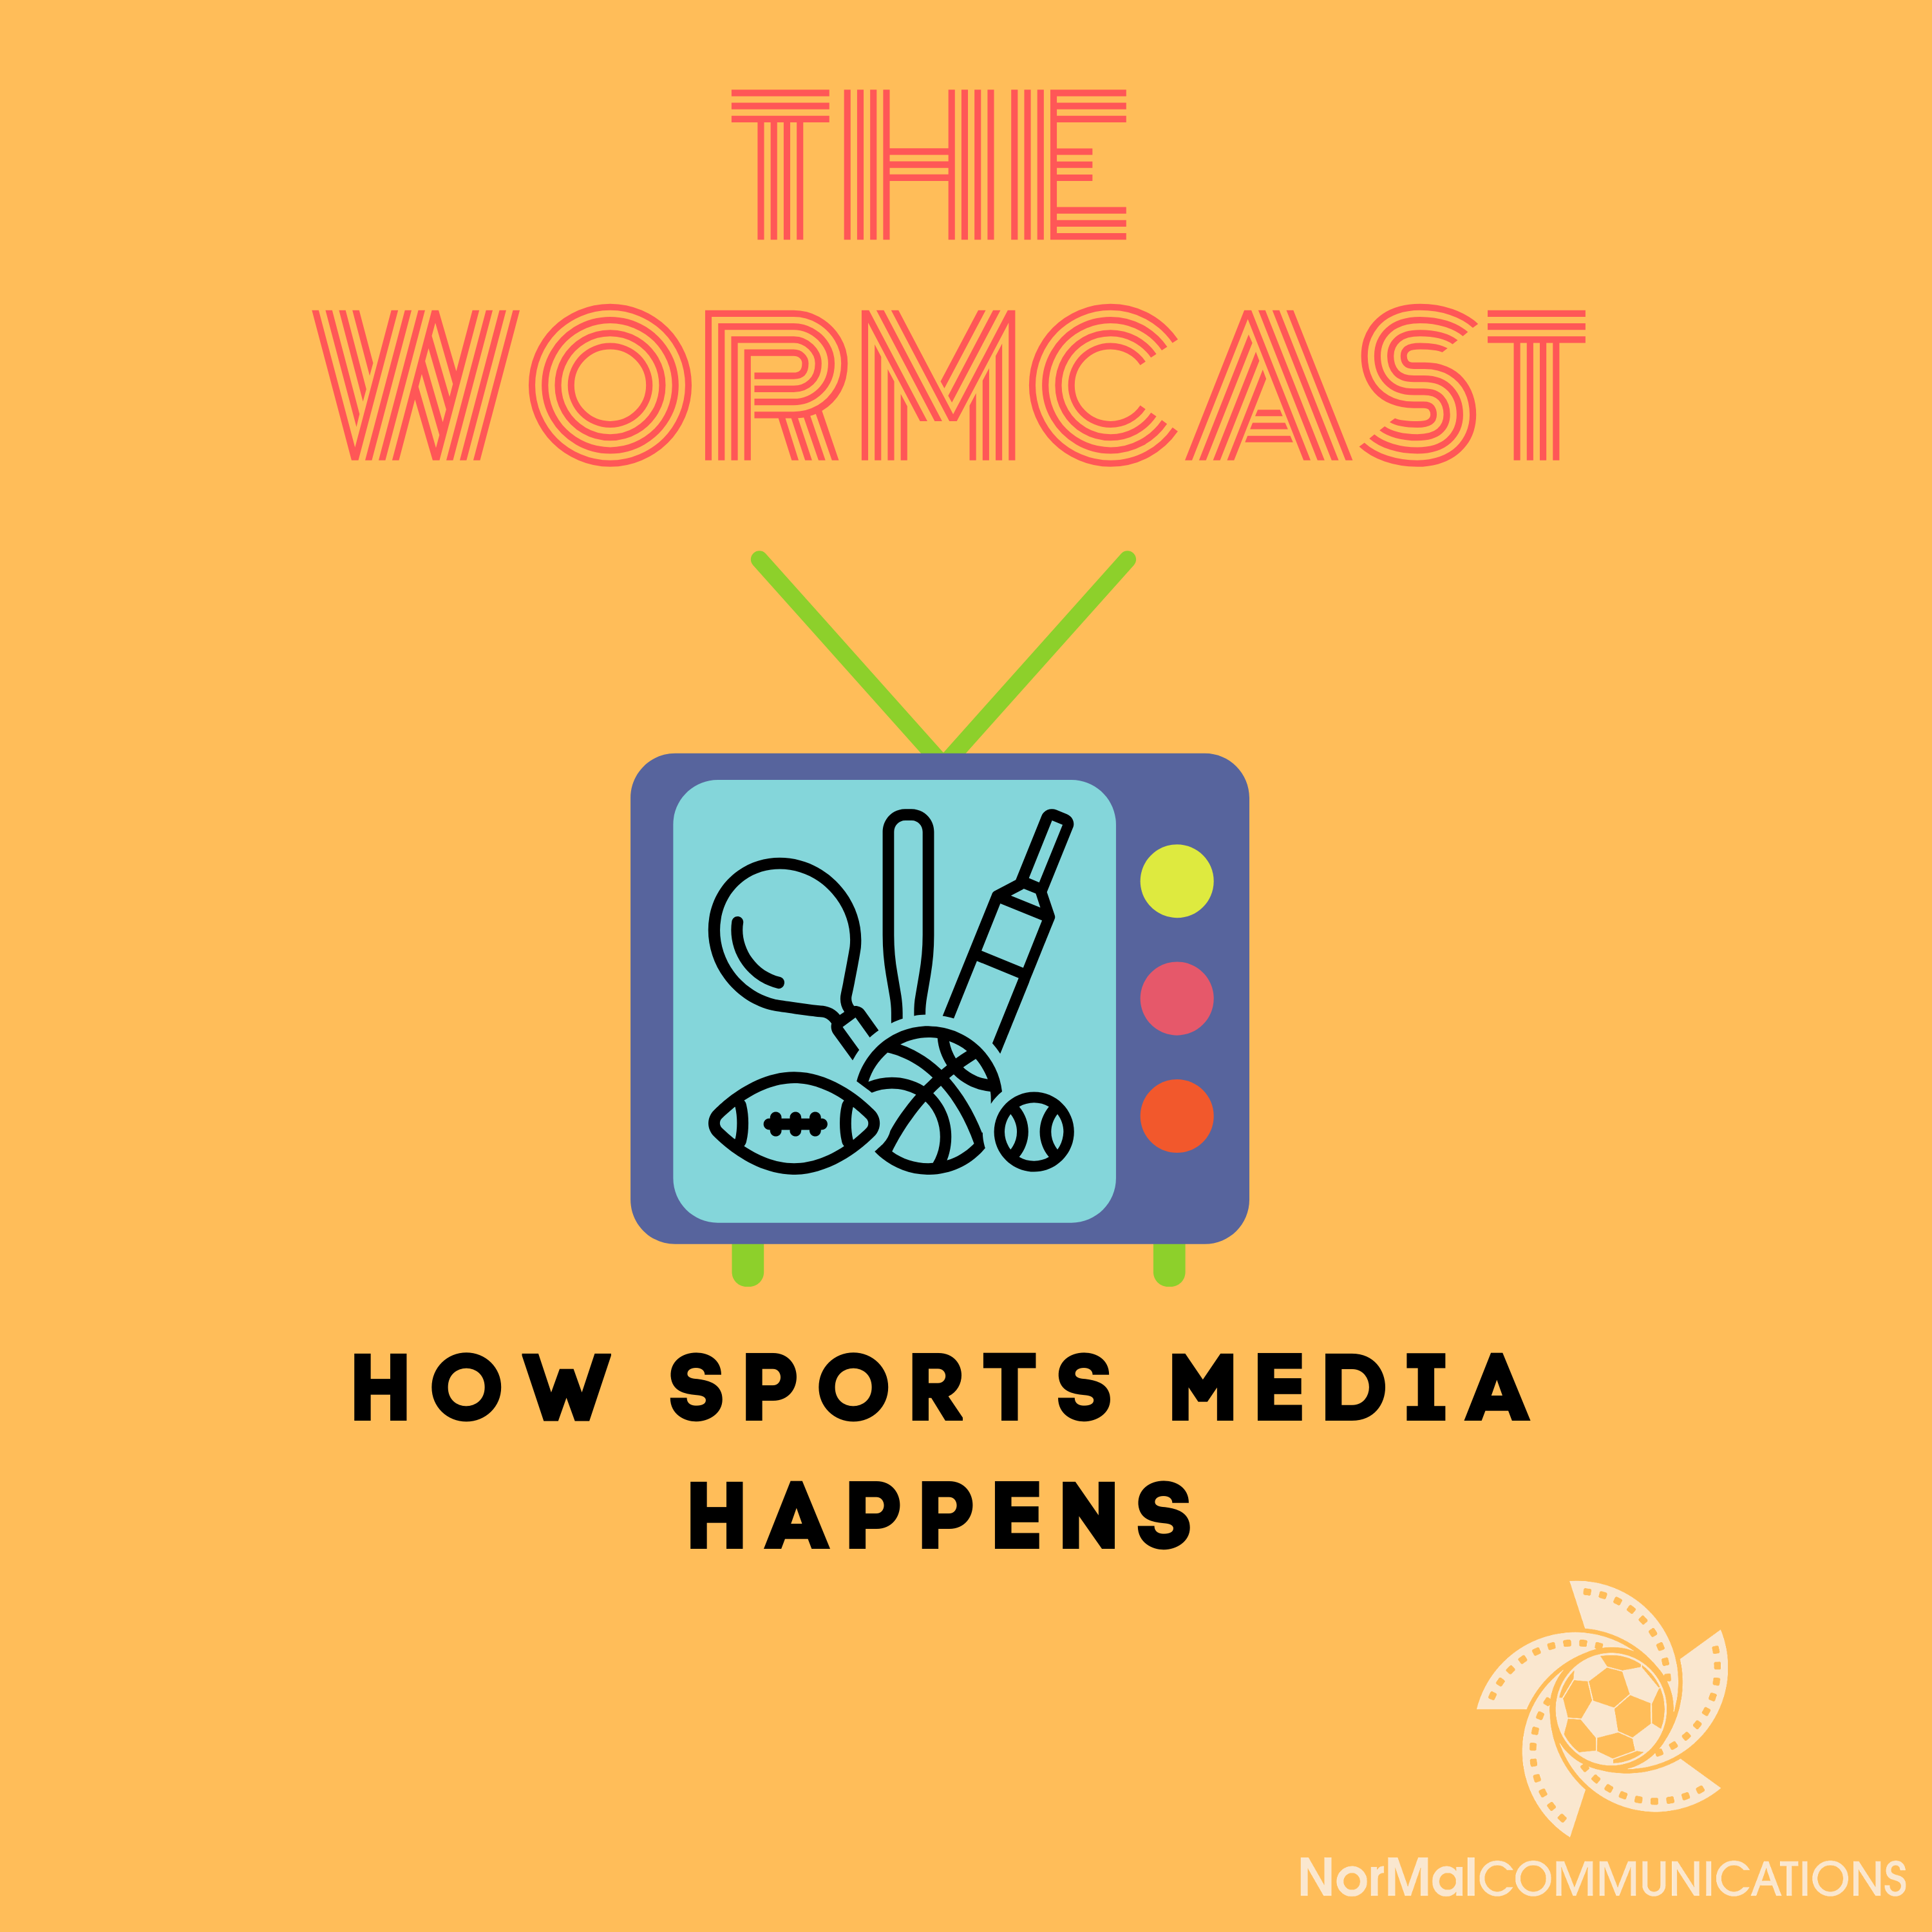 The Wormcast: How Sports Media Happens